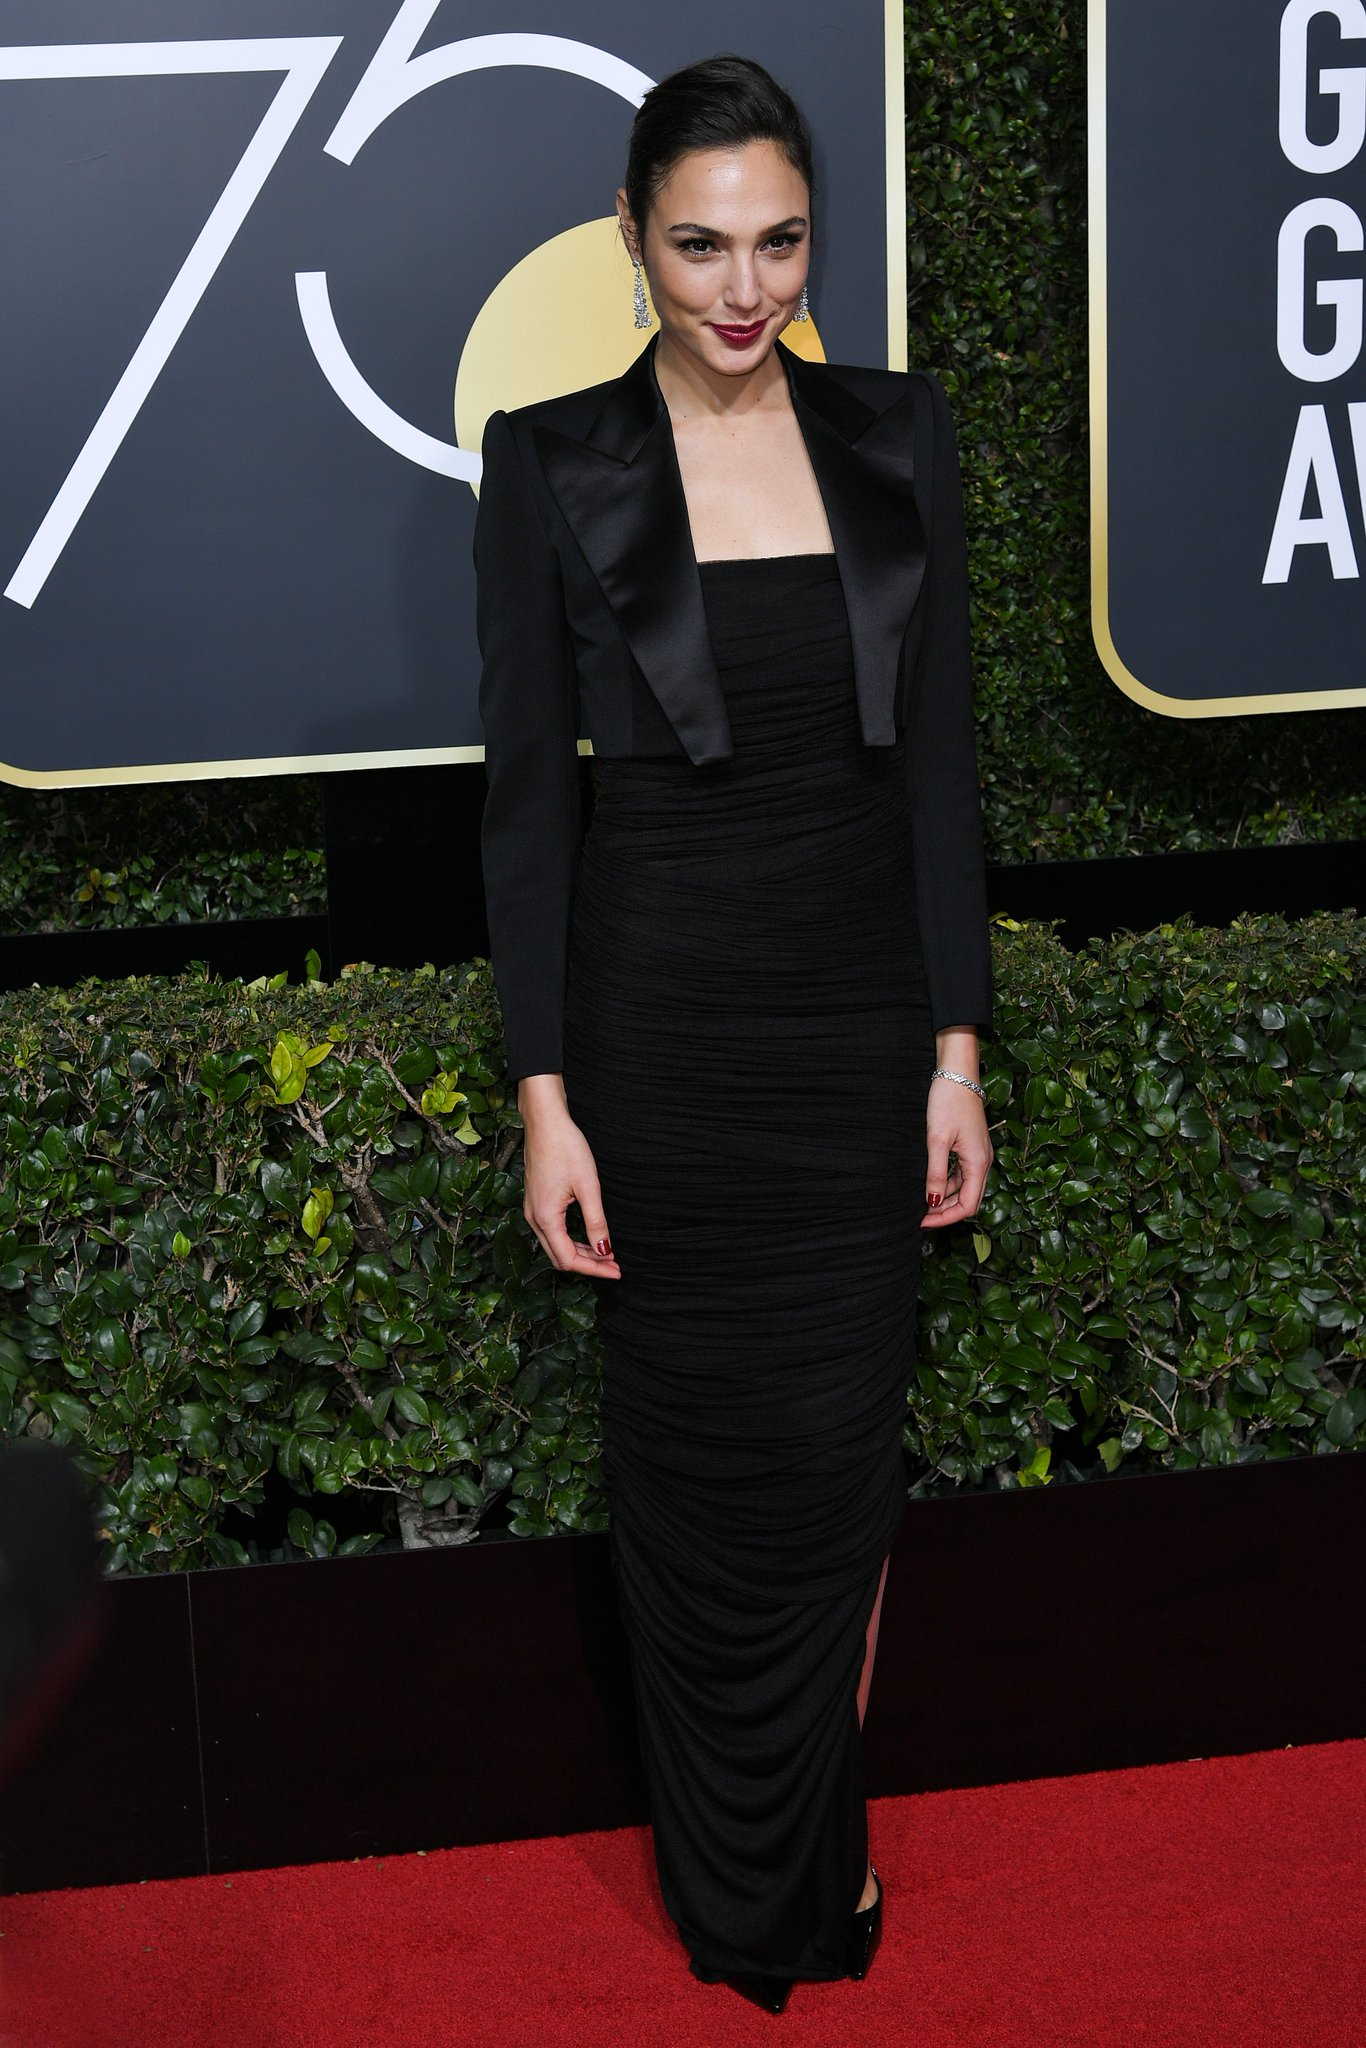 Wonder Woman herself, @GalGadot, is on the #GoldenGlobes red carpet https://t.co/zxoIAGm1bW https://t.co/1DdAsjTxaU